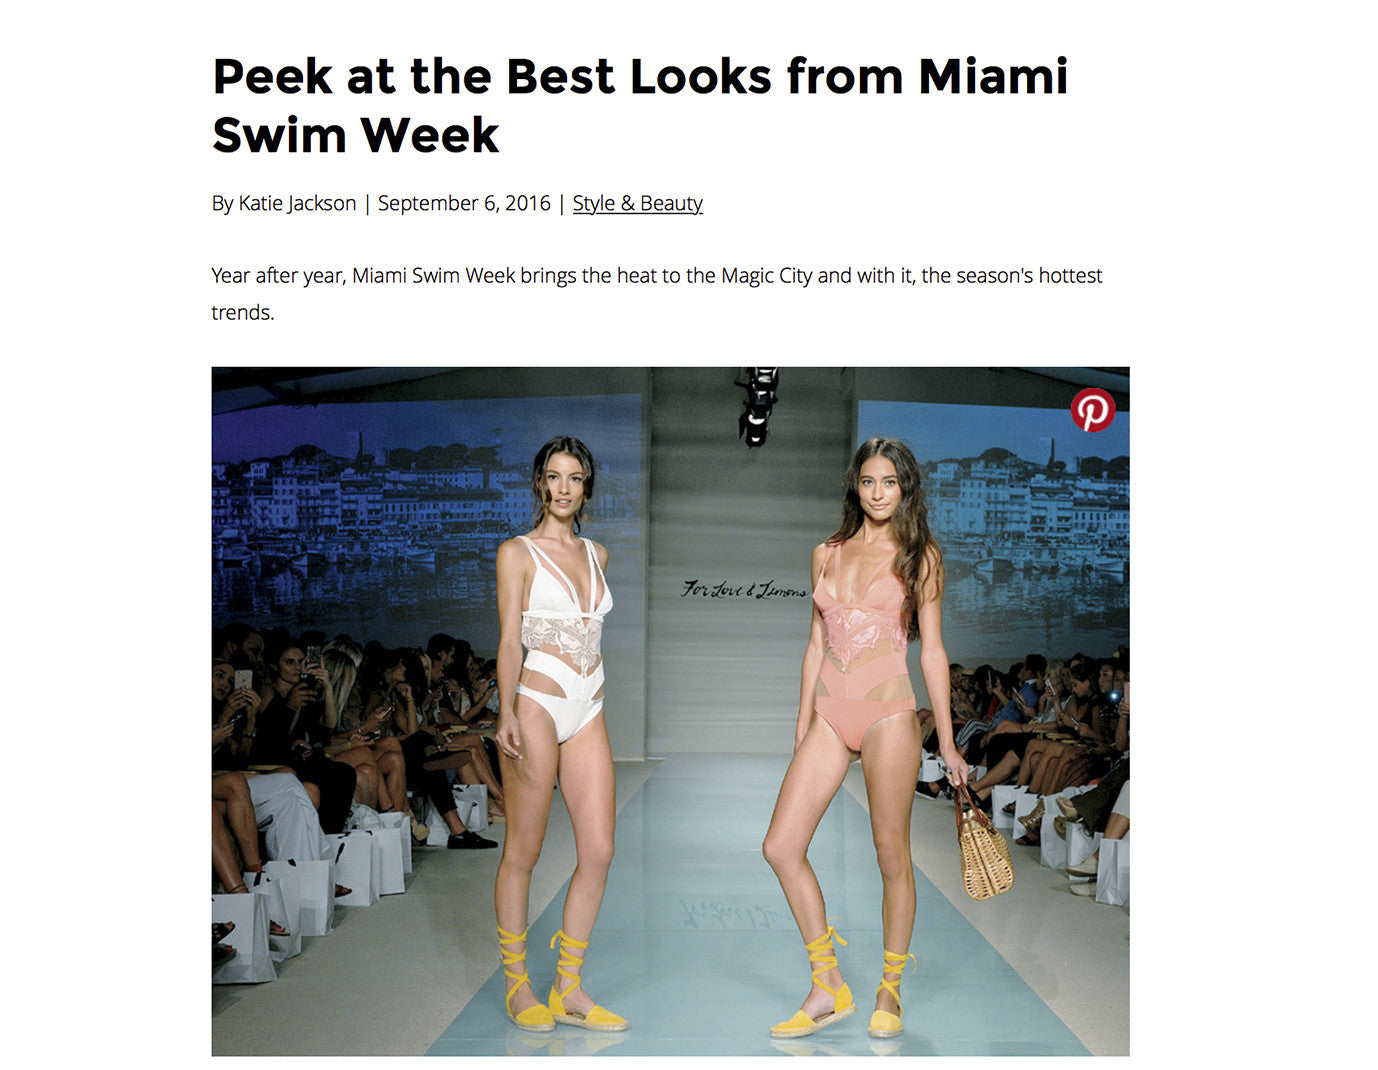 OceanDrive- Best Looks From Miami Swim Week